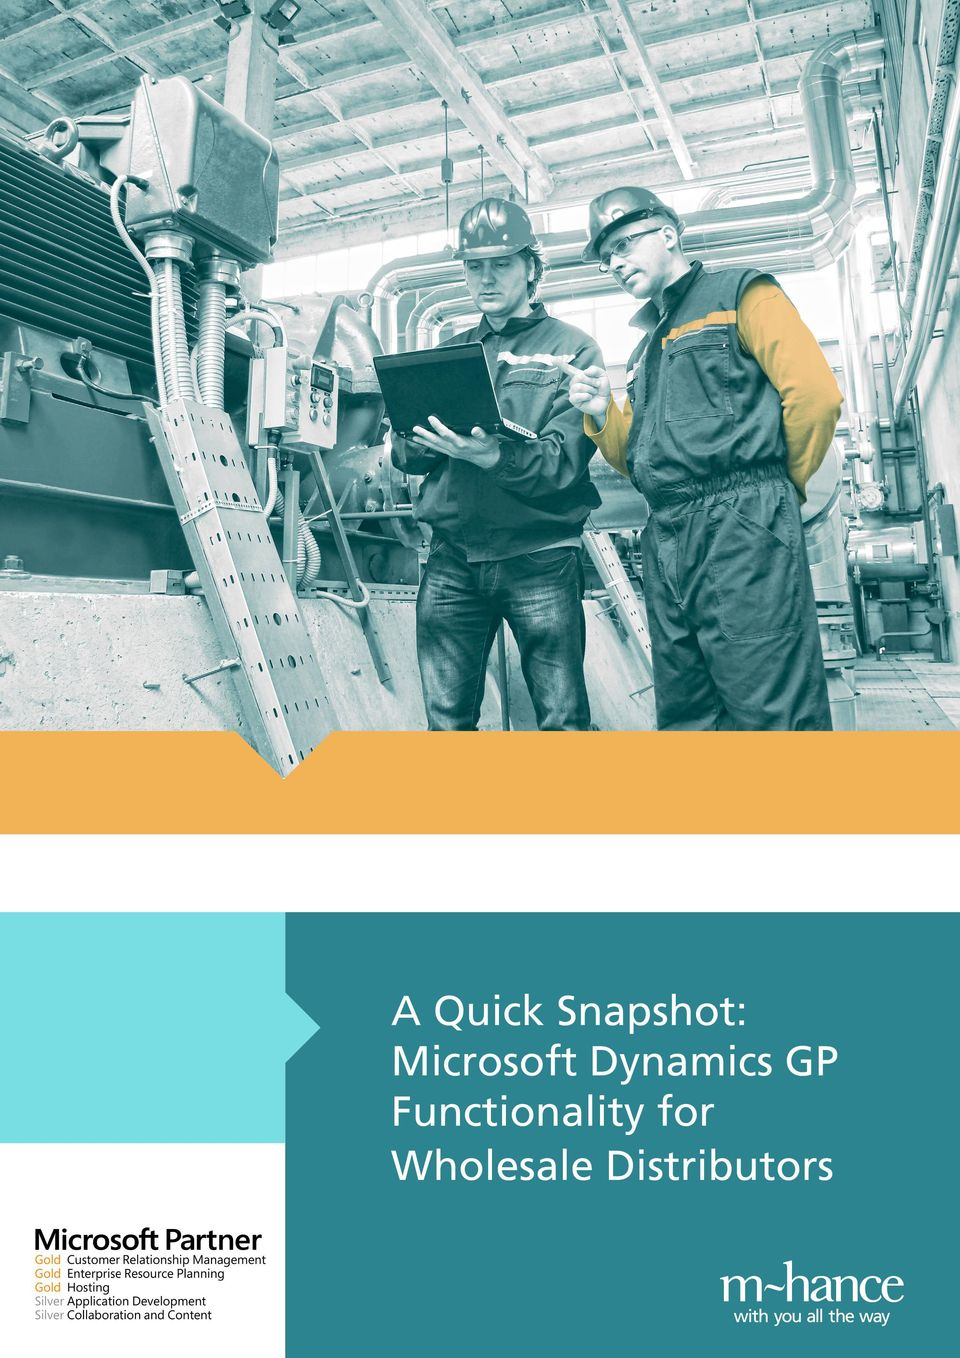 A Quick Snapshot: Microsoft Dynamics GP Functionality for